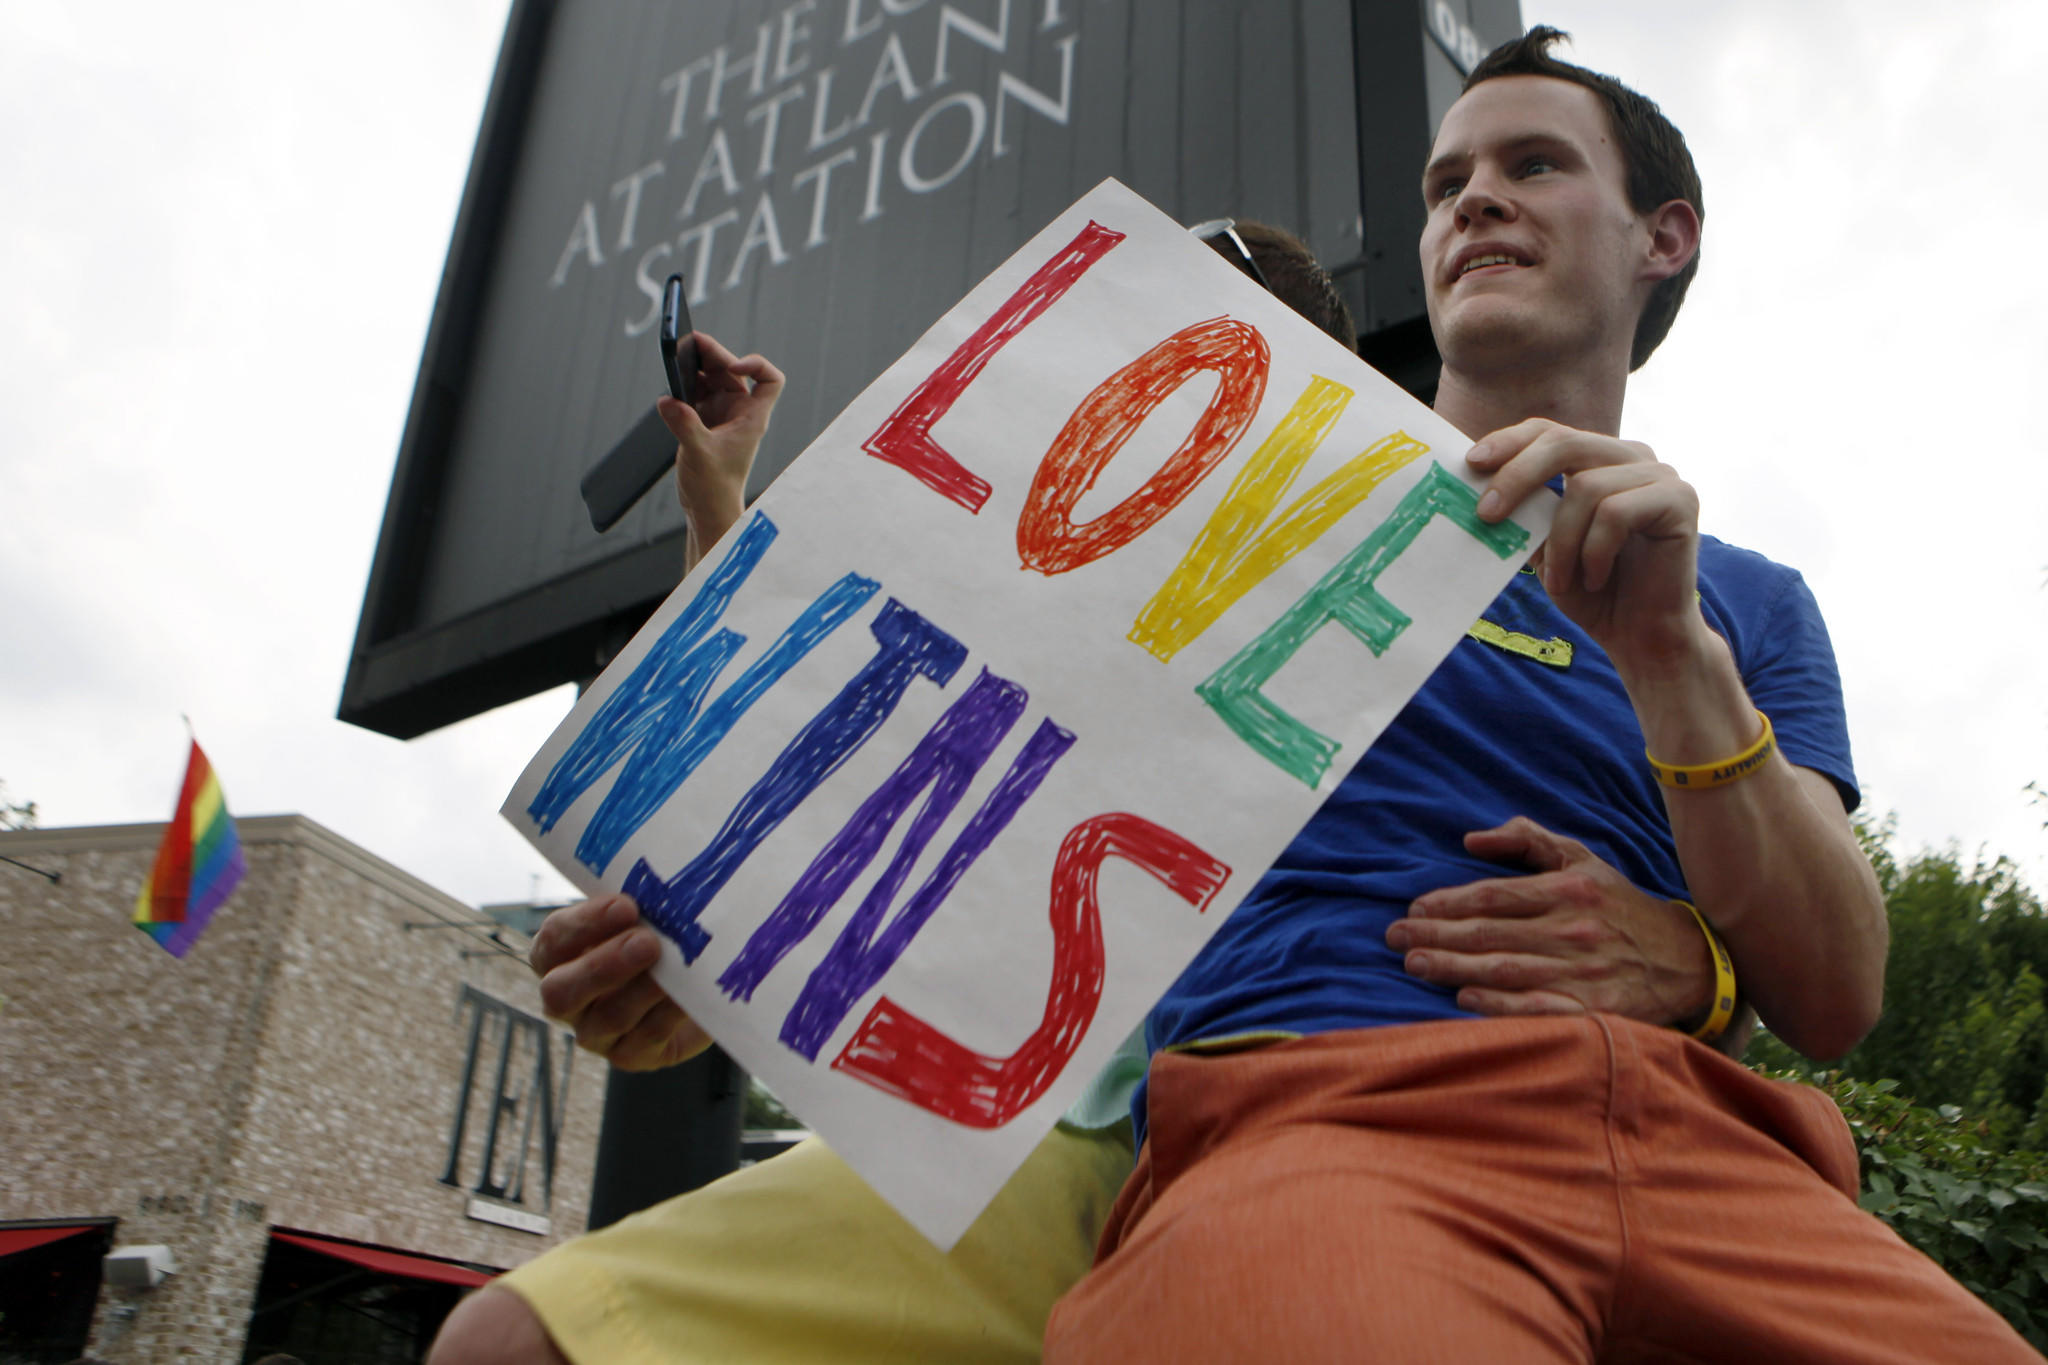 Daniel Hicks sits on a pillar in Atlanta with his boyfriend to watch the local crowd celebrate the U.S. Supreme Court's rulings on two landmark gay rights cases surrounding same-sex marriage.